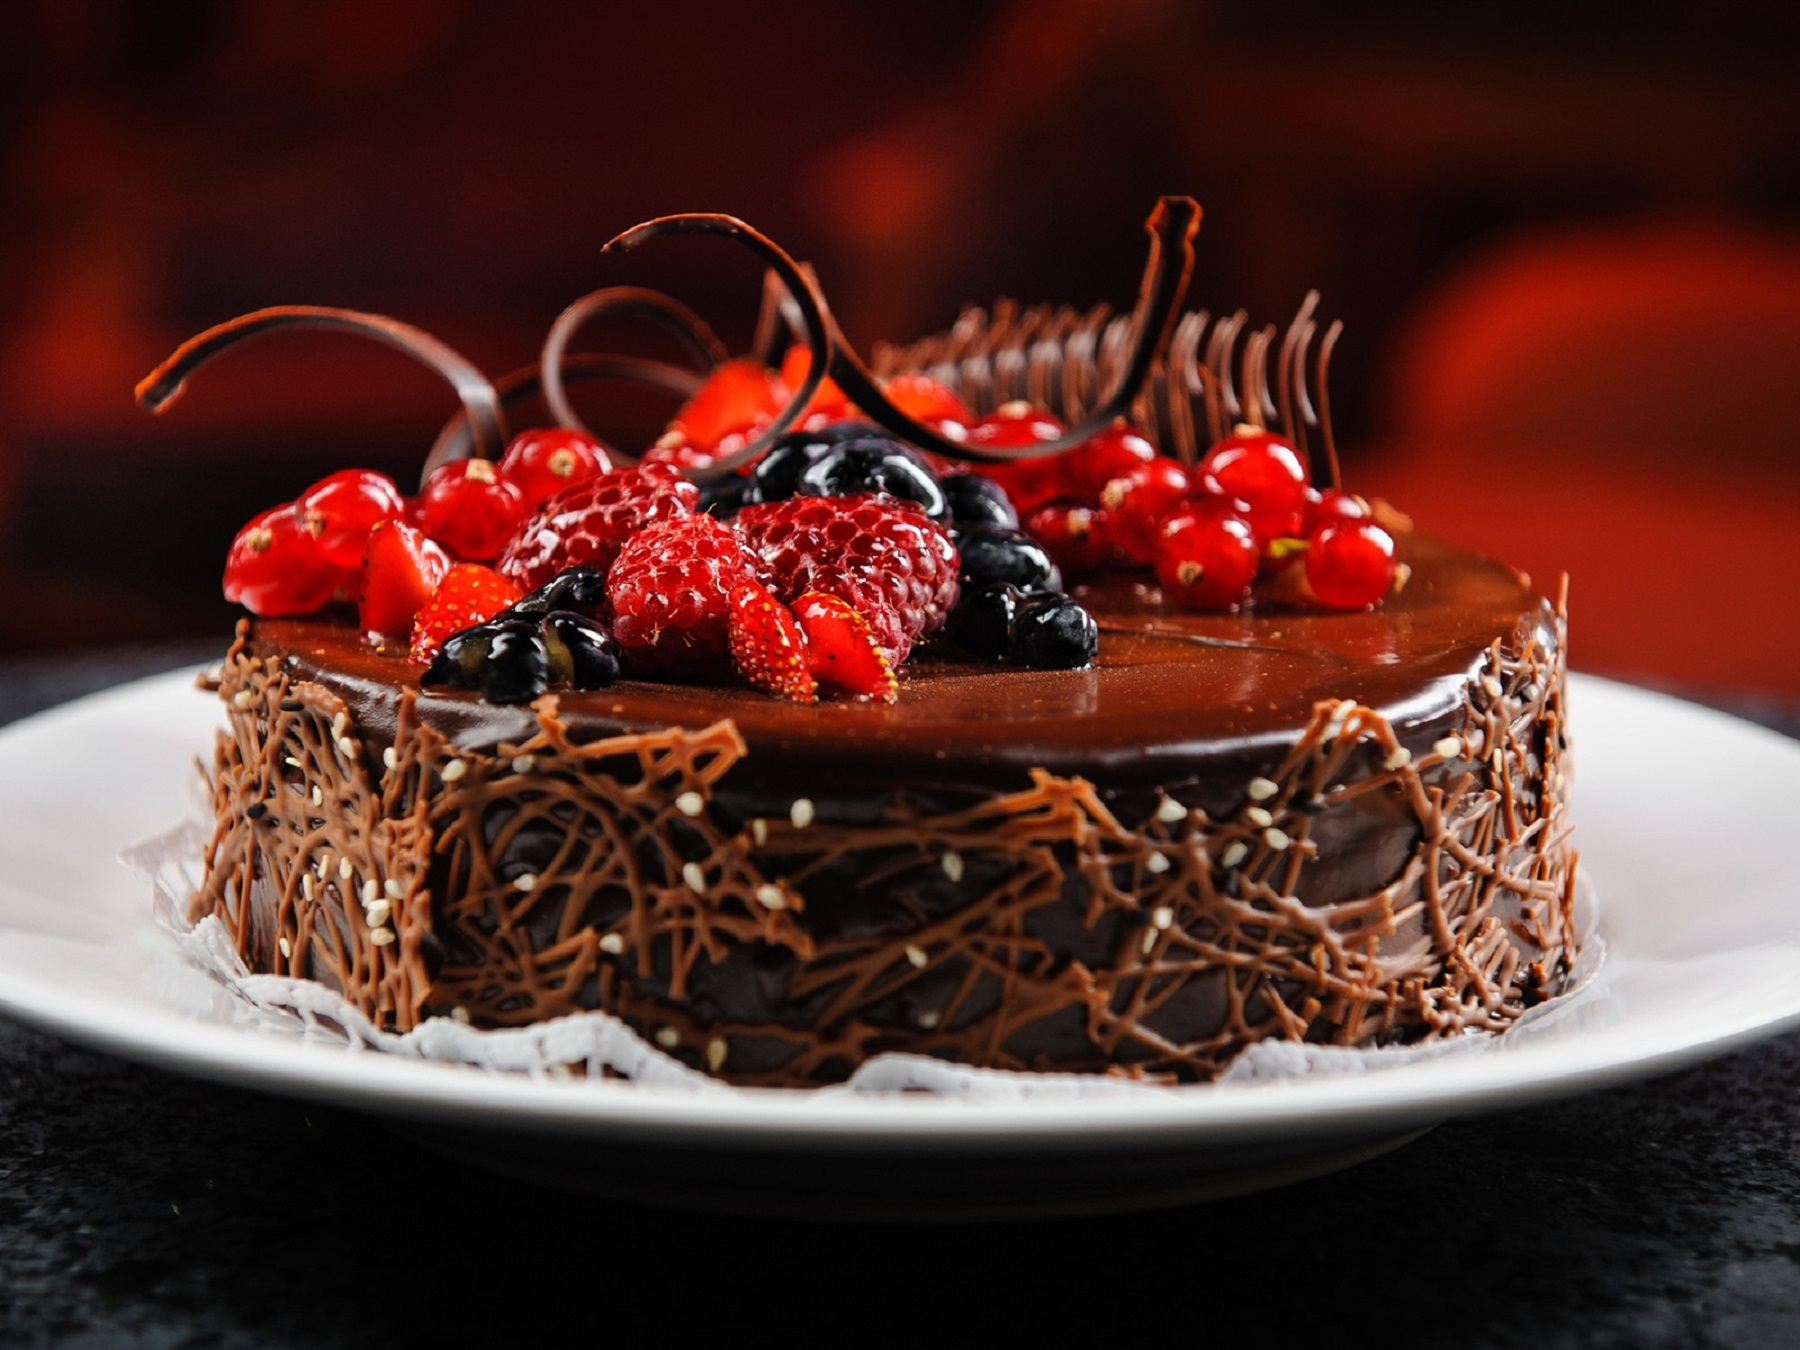 birthday delicious cake with chocolate chips HD Wallpapers Rocks 1800x1350